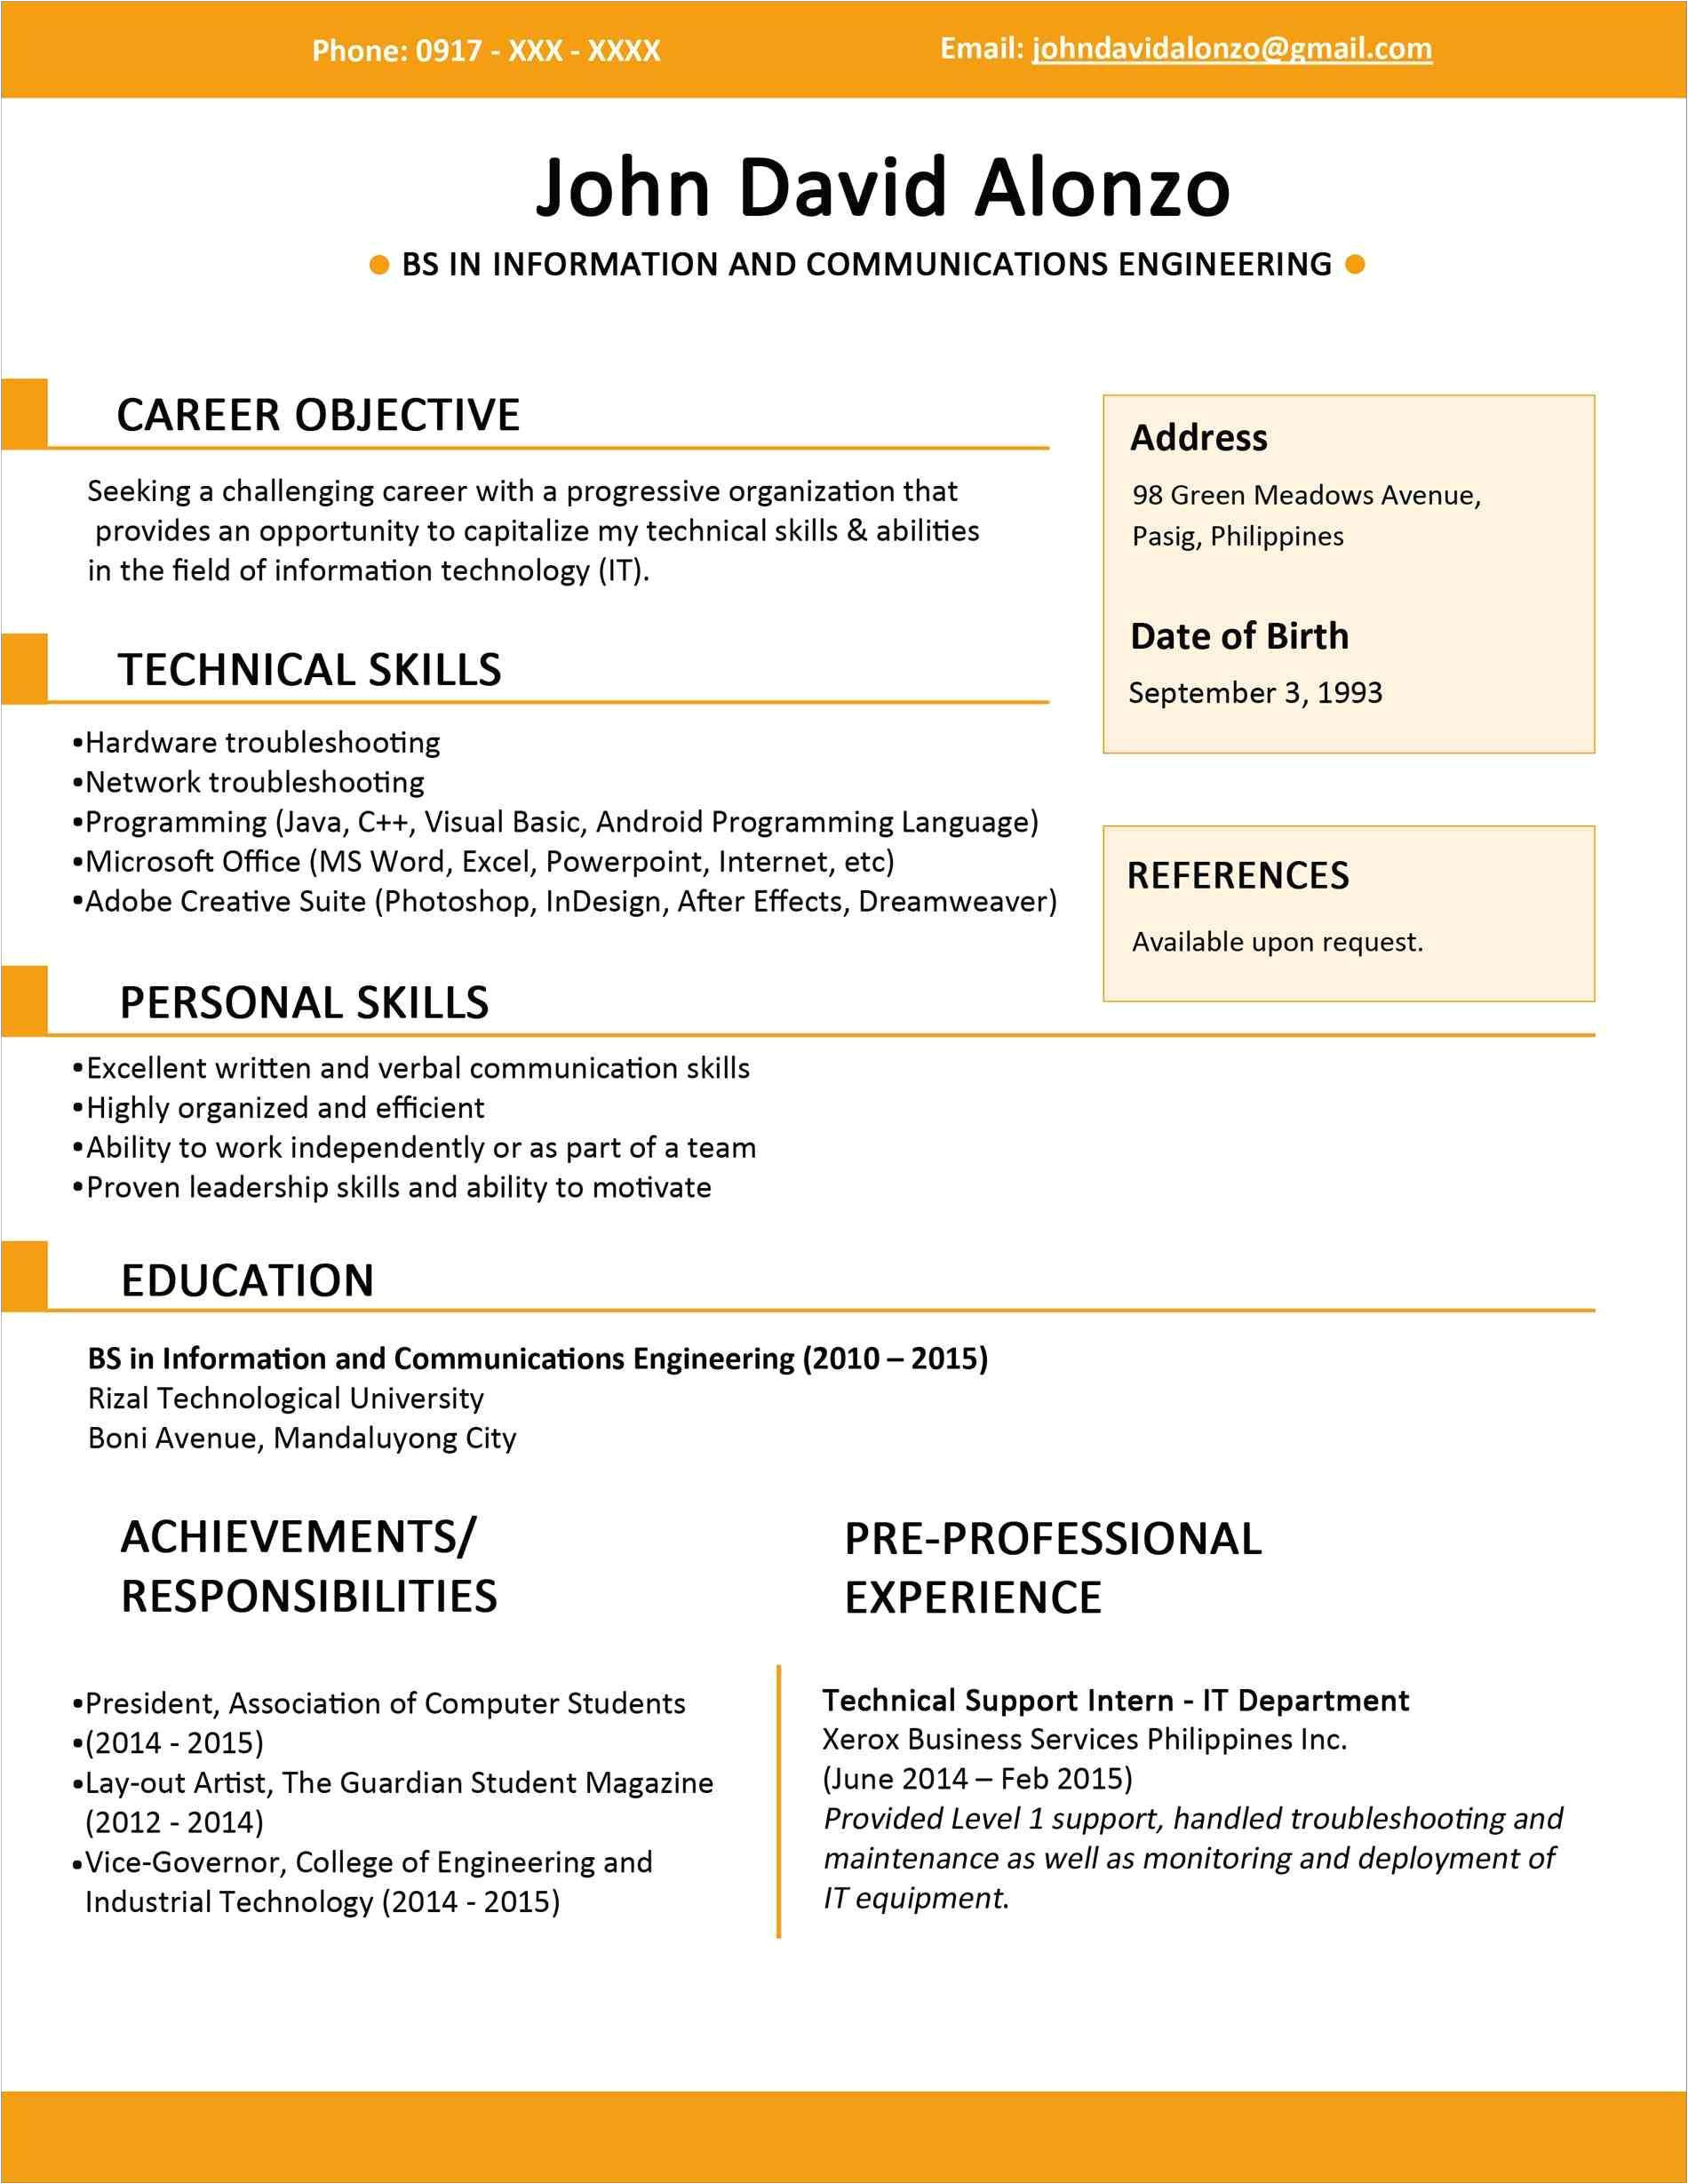 6 months experience resume sample in software engineer awesome 100 resume format for freshers engineers